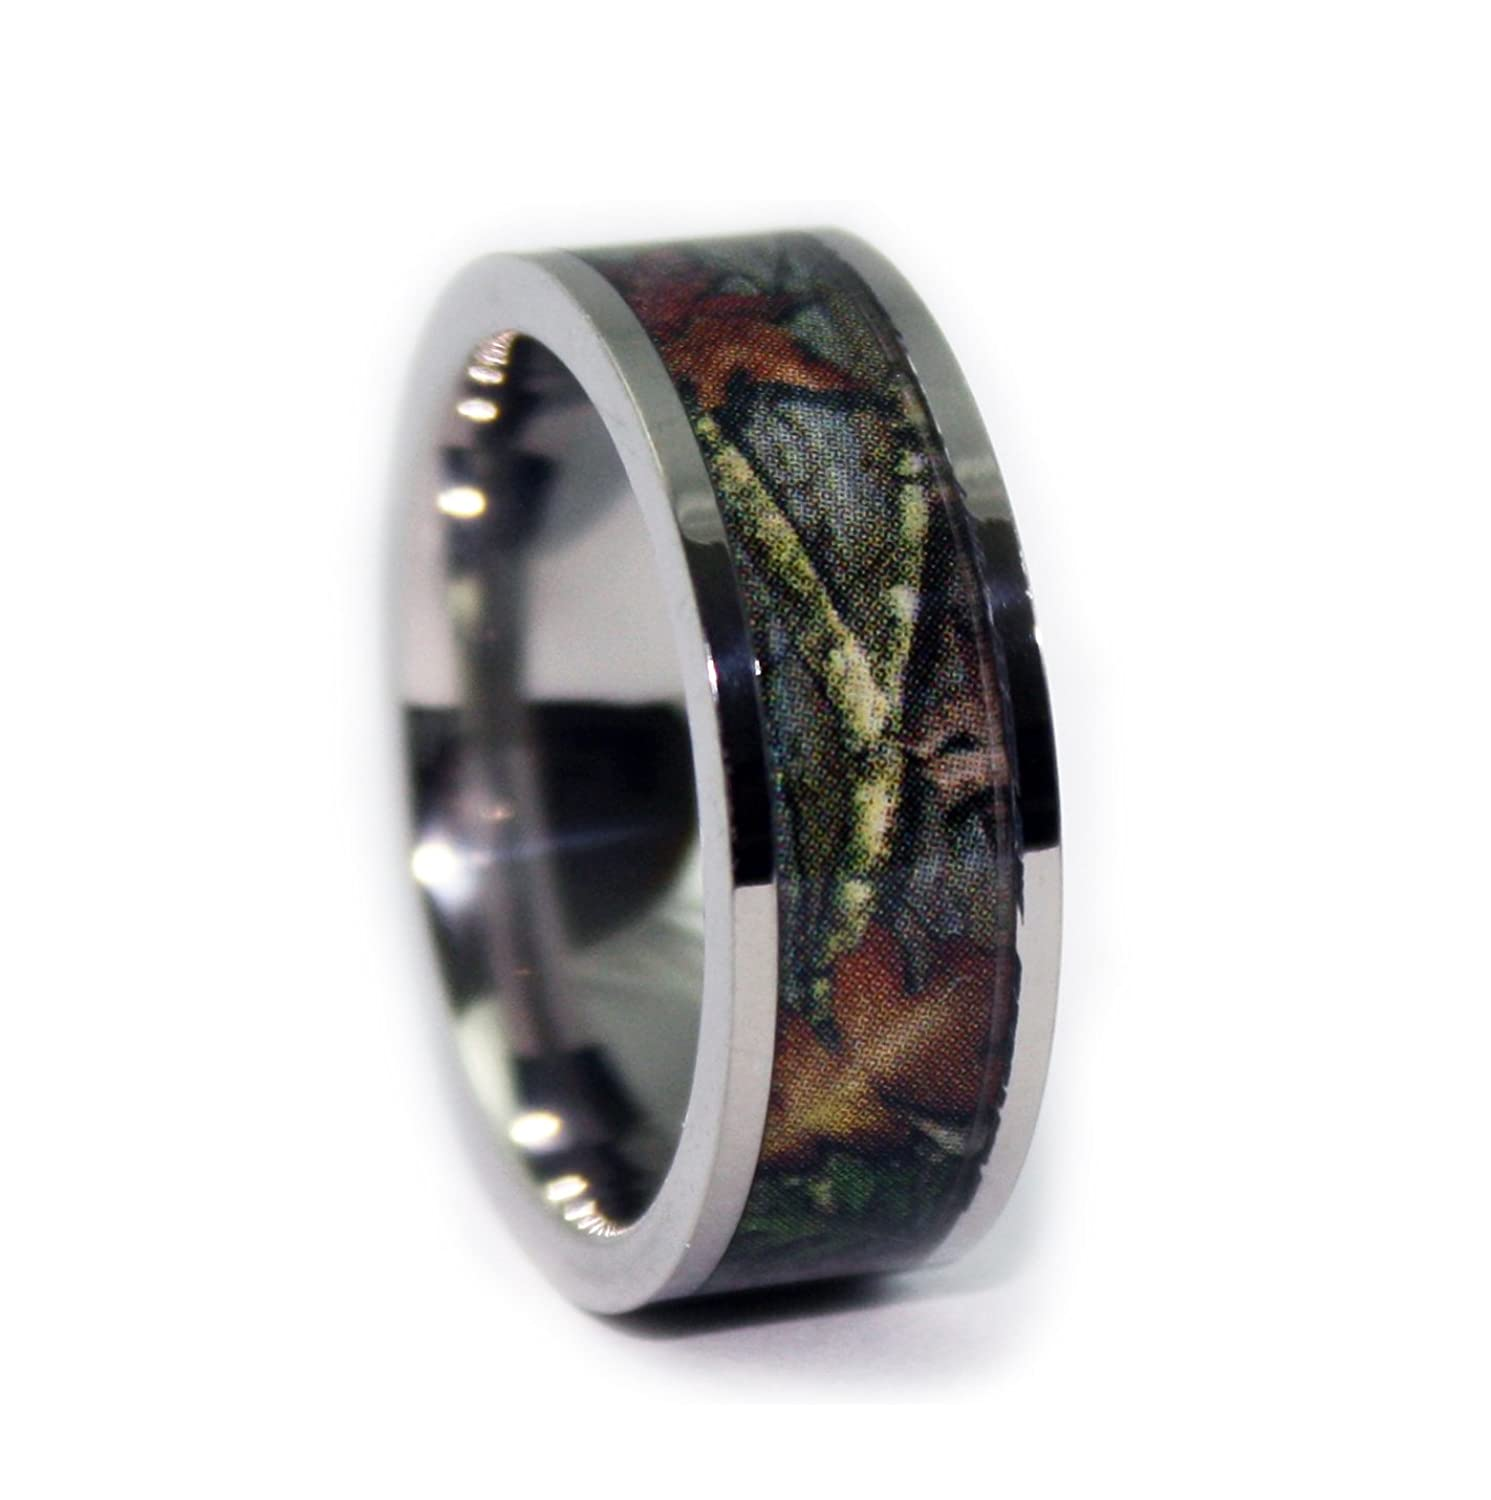 amazoncom camo wedding rings by 1 camo camo engagement rings flat titanium jewelry - Flat Wedding Rings